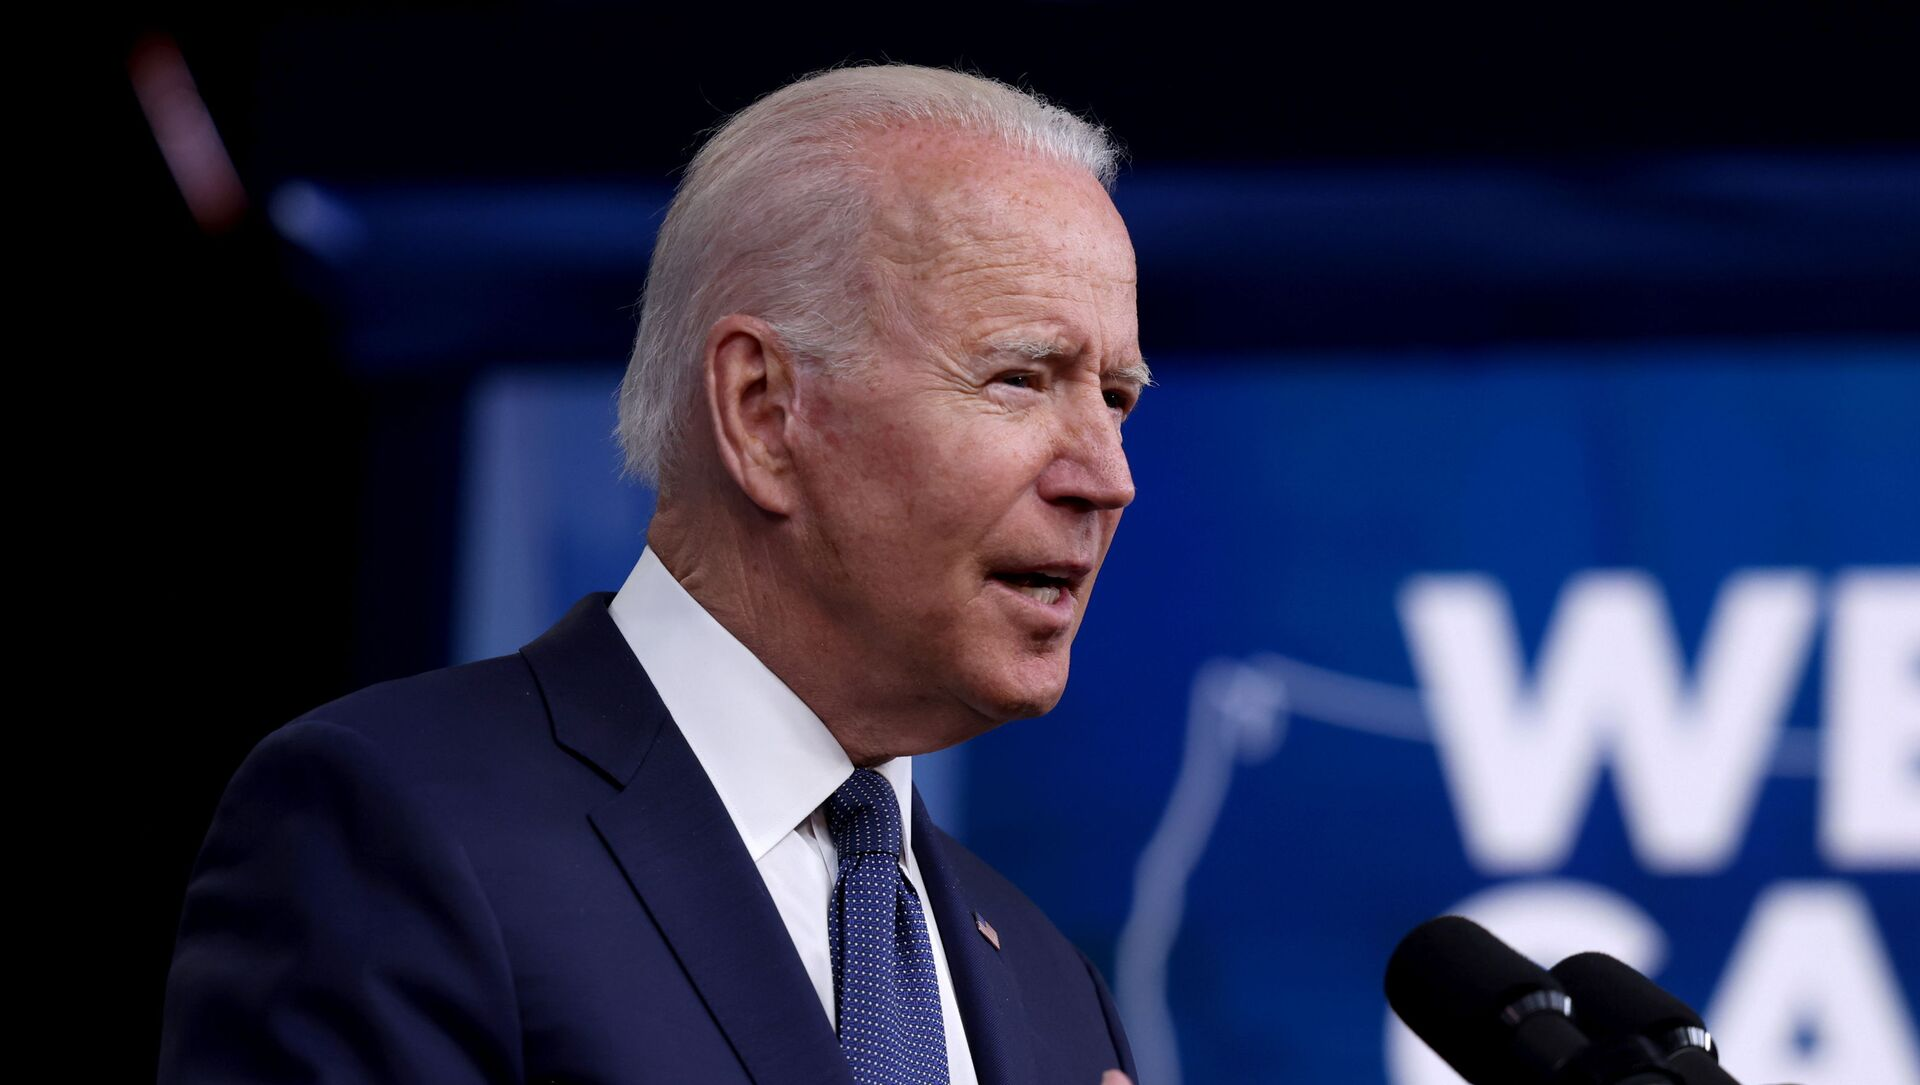 US President Joe Biden delivers remarks on the administration's coronavirus disease (COVID-19) response and the vaccination programme from the Eisenhower Executive Office Building's South Court Auditorium at the White House in Washington, DC, 6 July 2021.  - Sputnik International, 1920, 24.07.2021